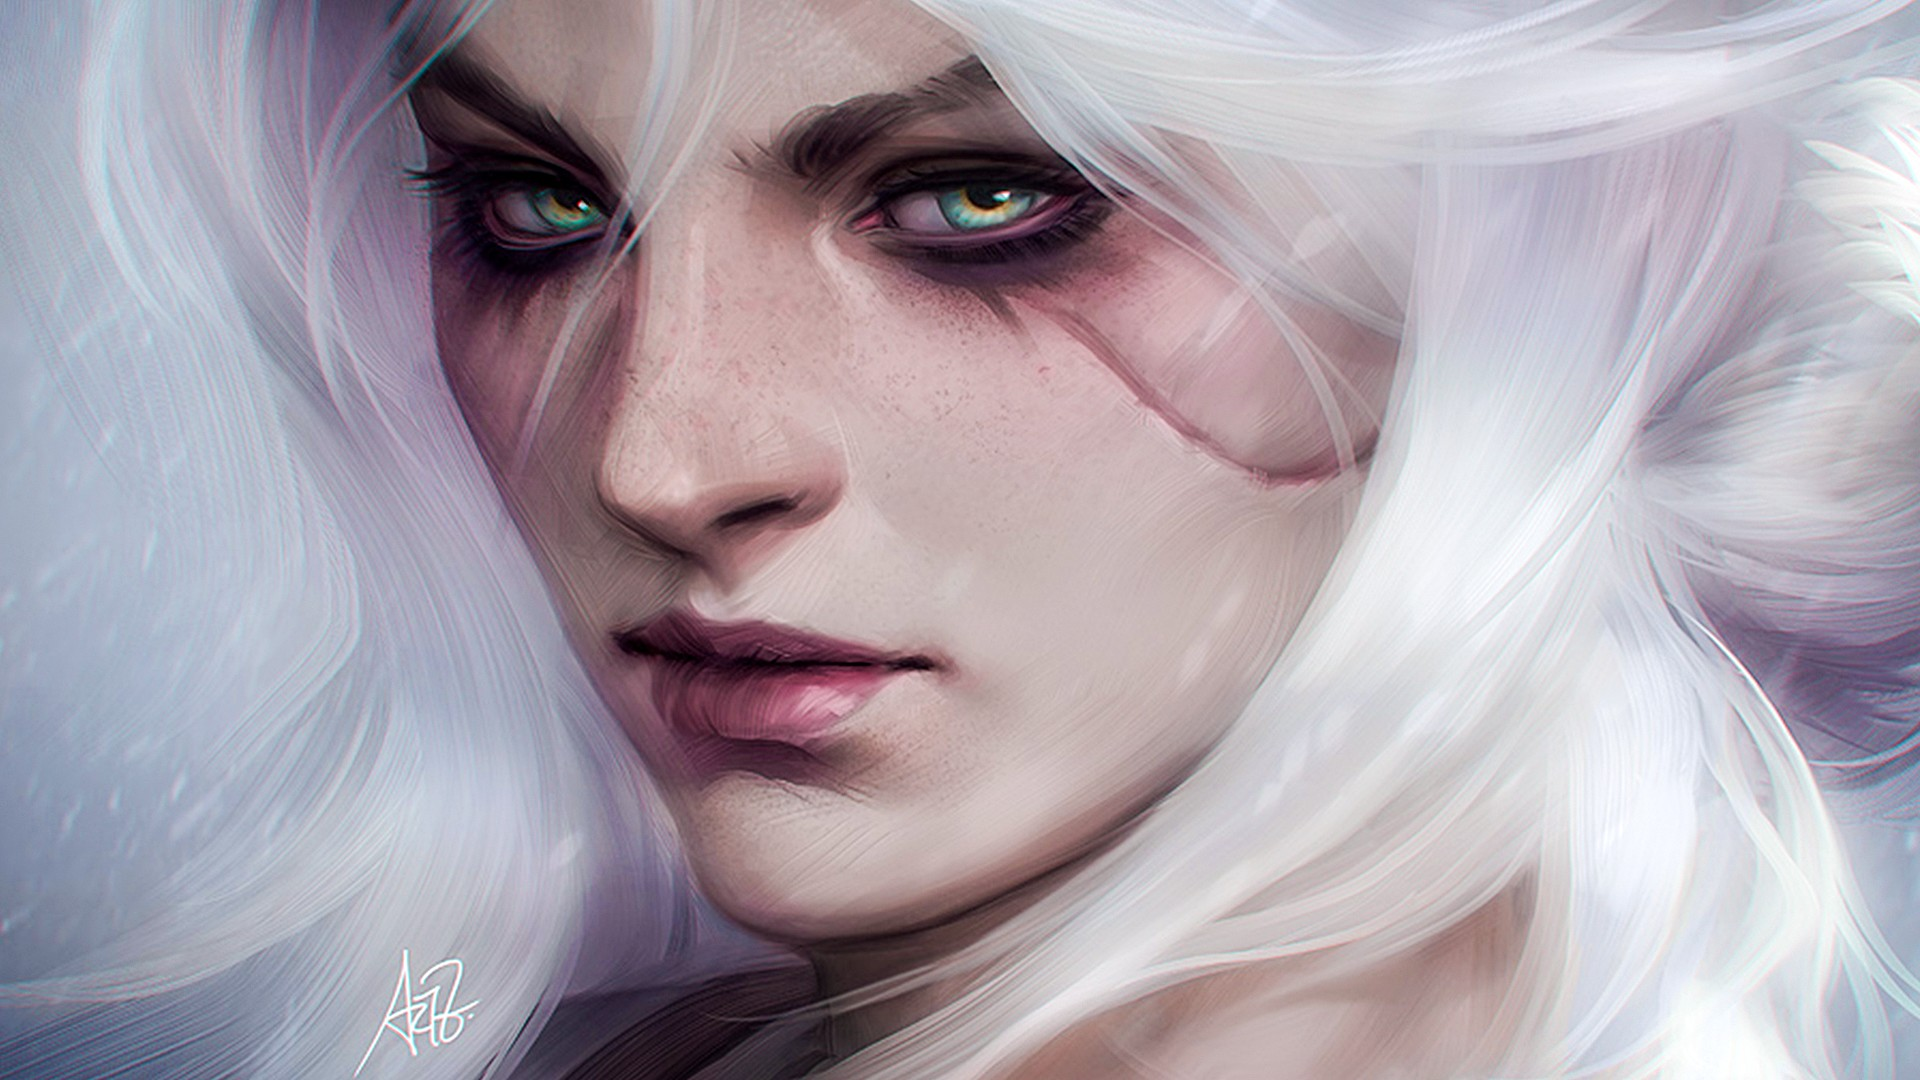 Wallpaper The witcher video game, girl, witch, face, fan art